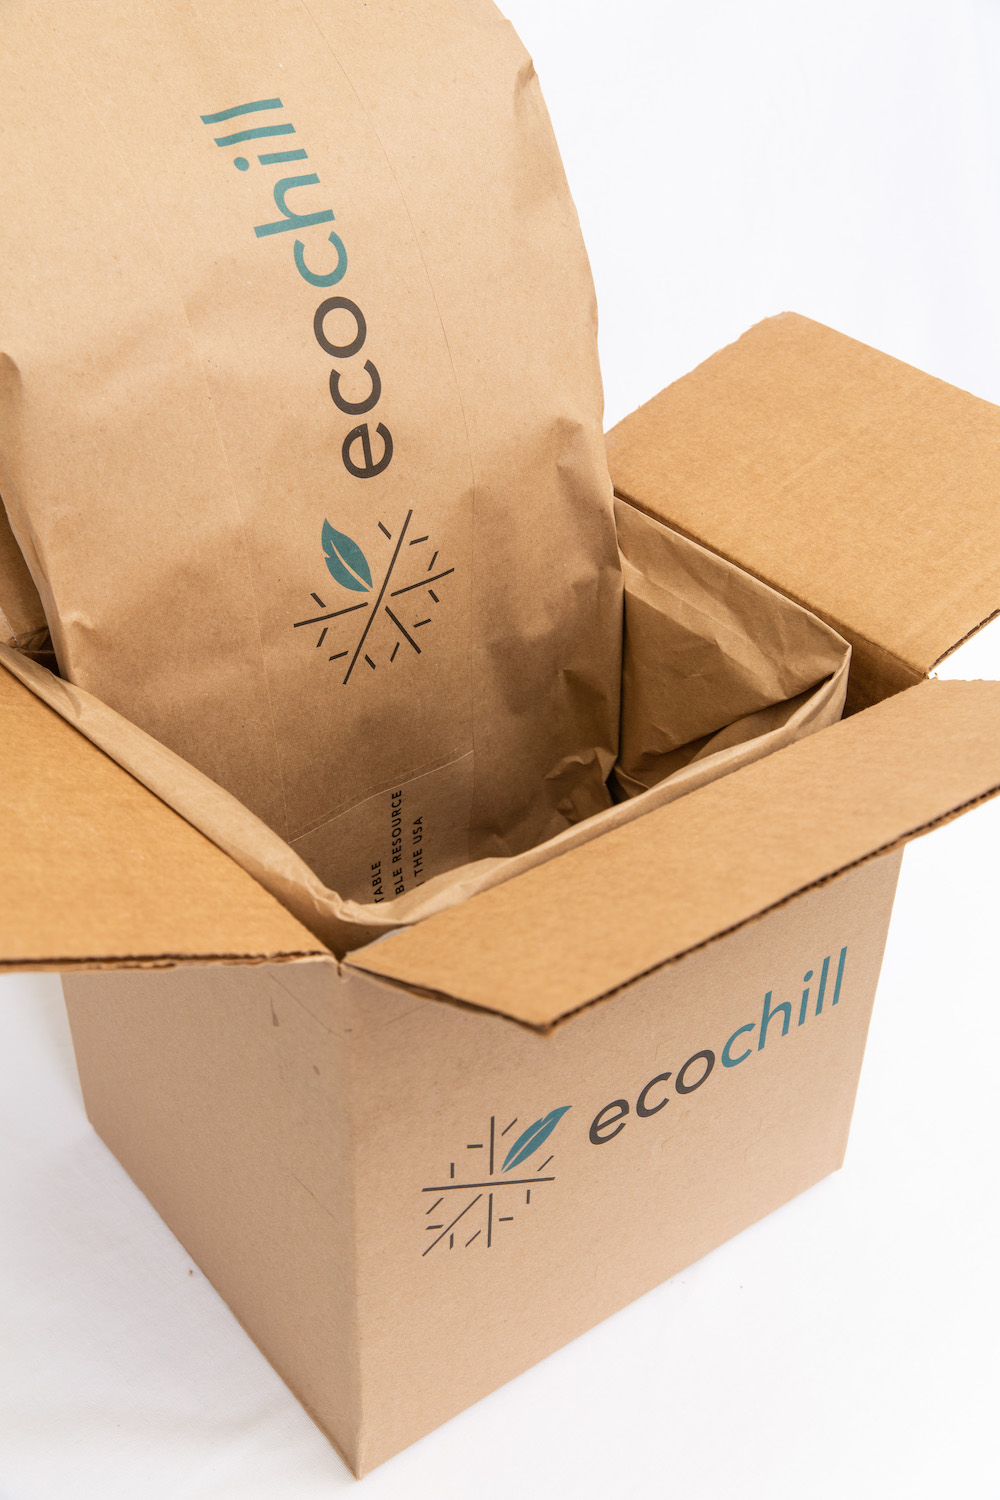 Ecochill Environmentally Friendly Thermal Packaging | The